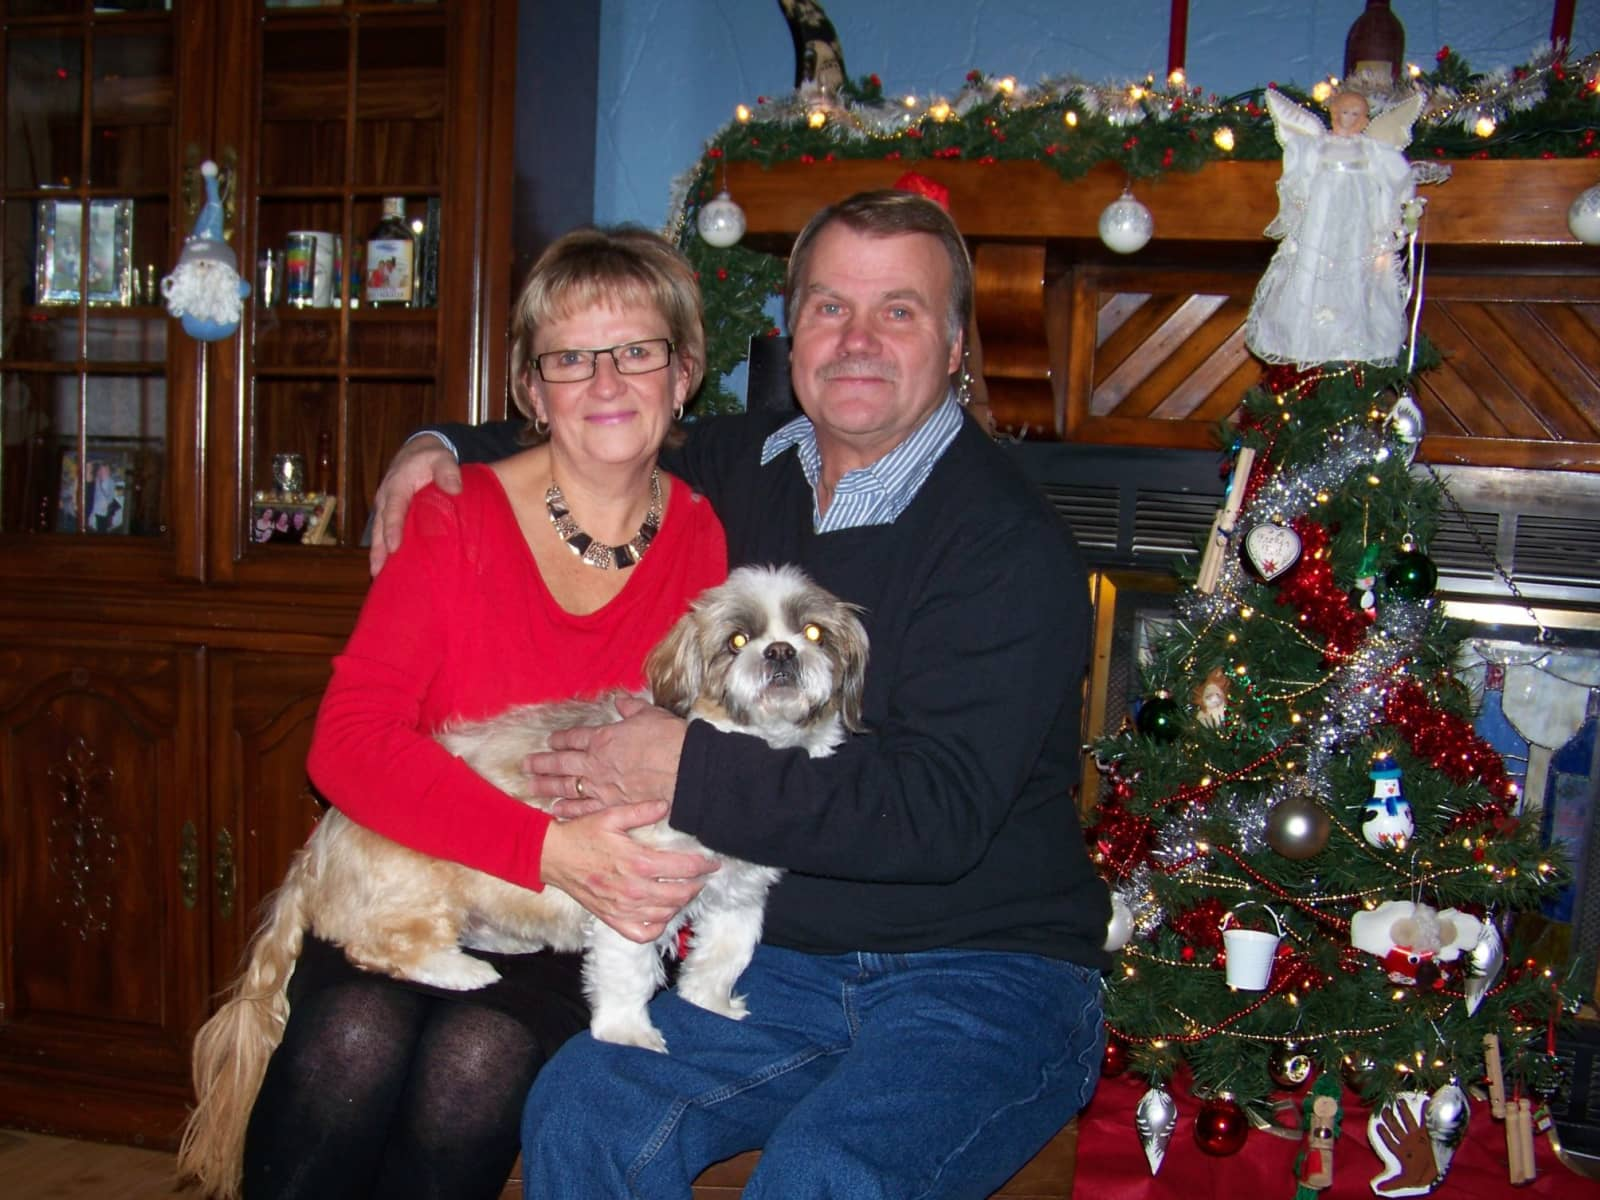 Carole & Clinton from Dawson Creek, British Columbia, Canada